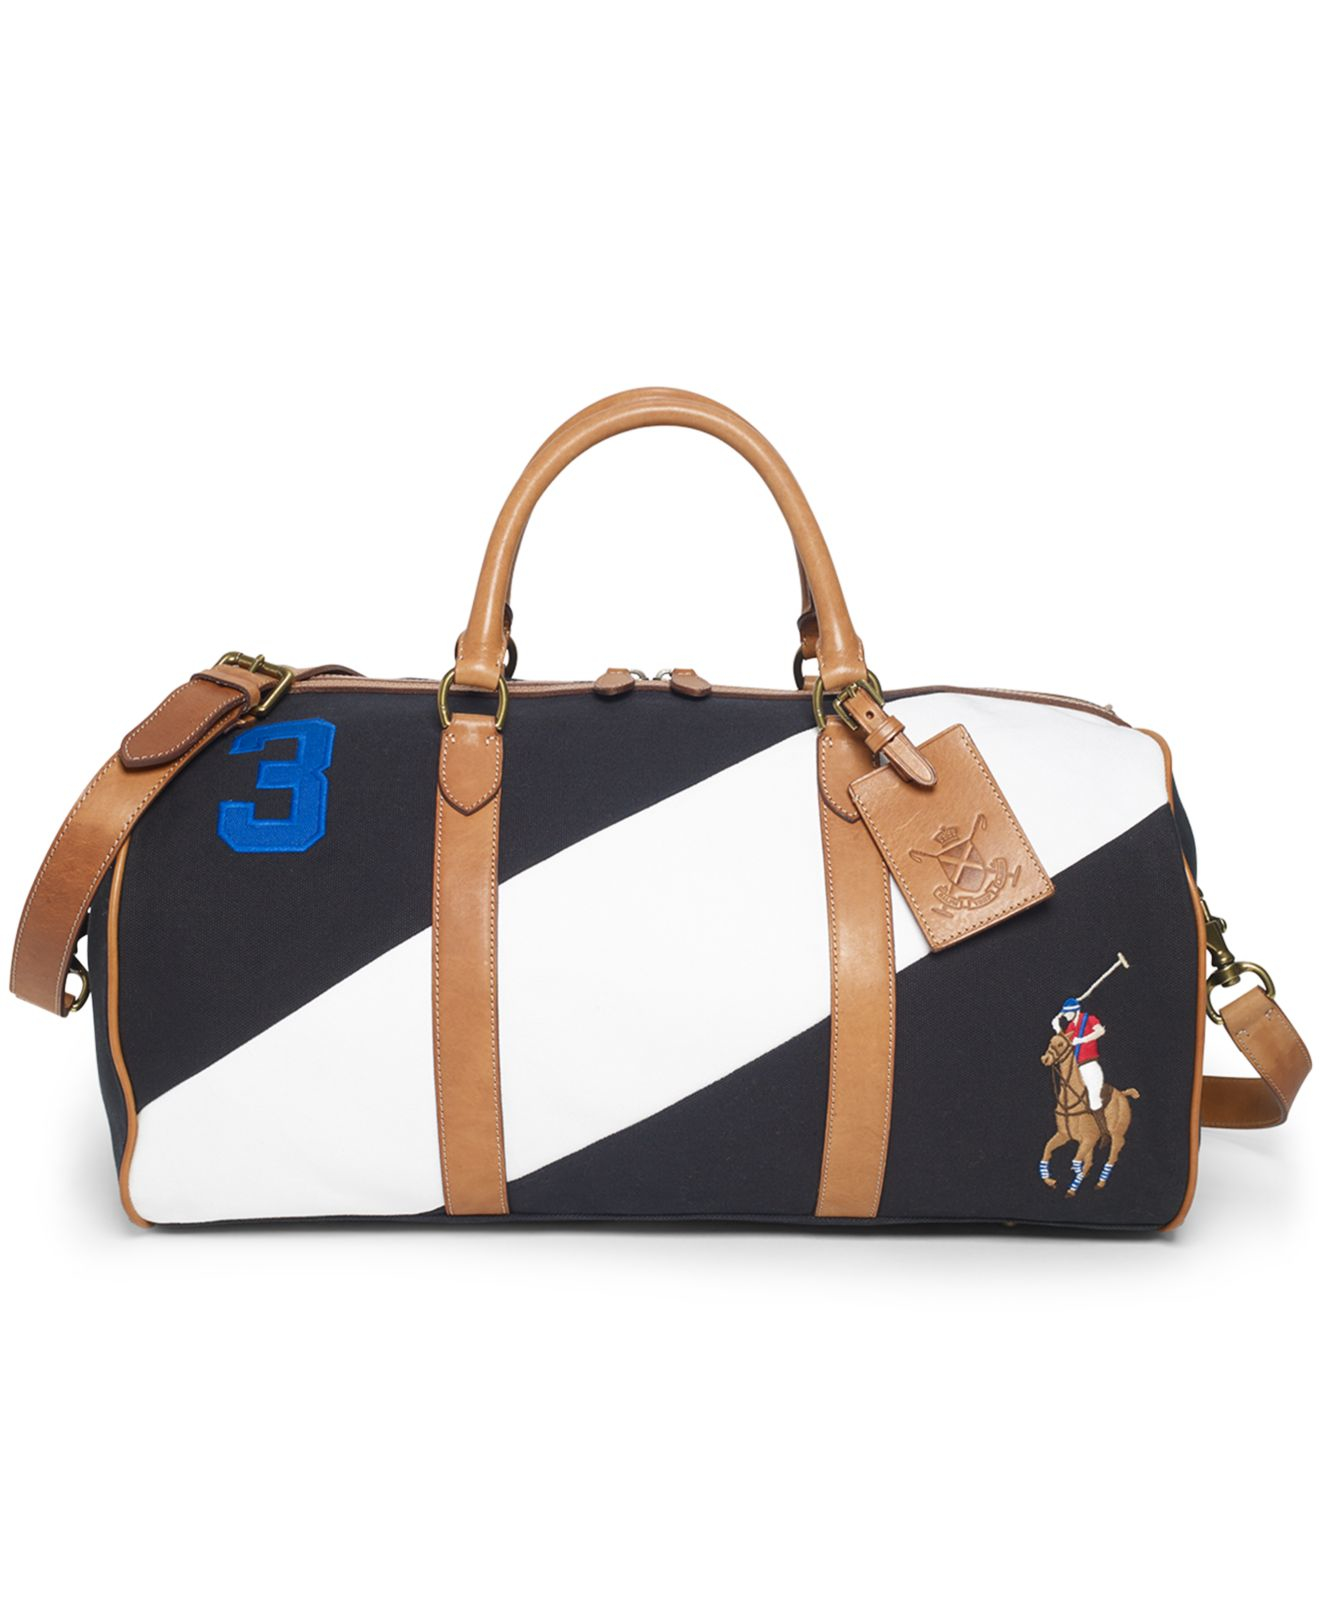 169a67889268 Lyst - Polo Ralph Lauren Canvas Black Watch Leather Detail Duffel ...